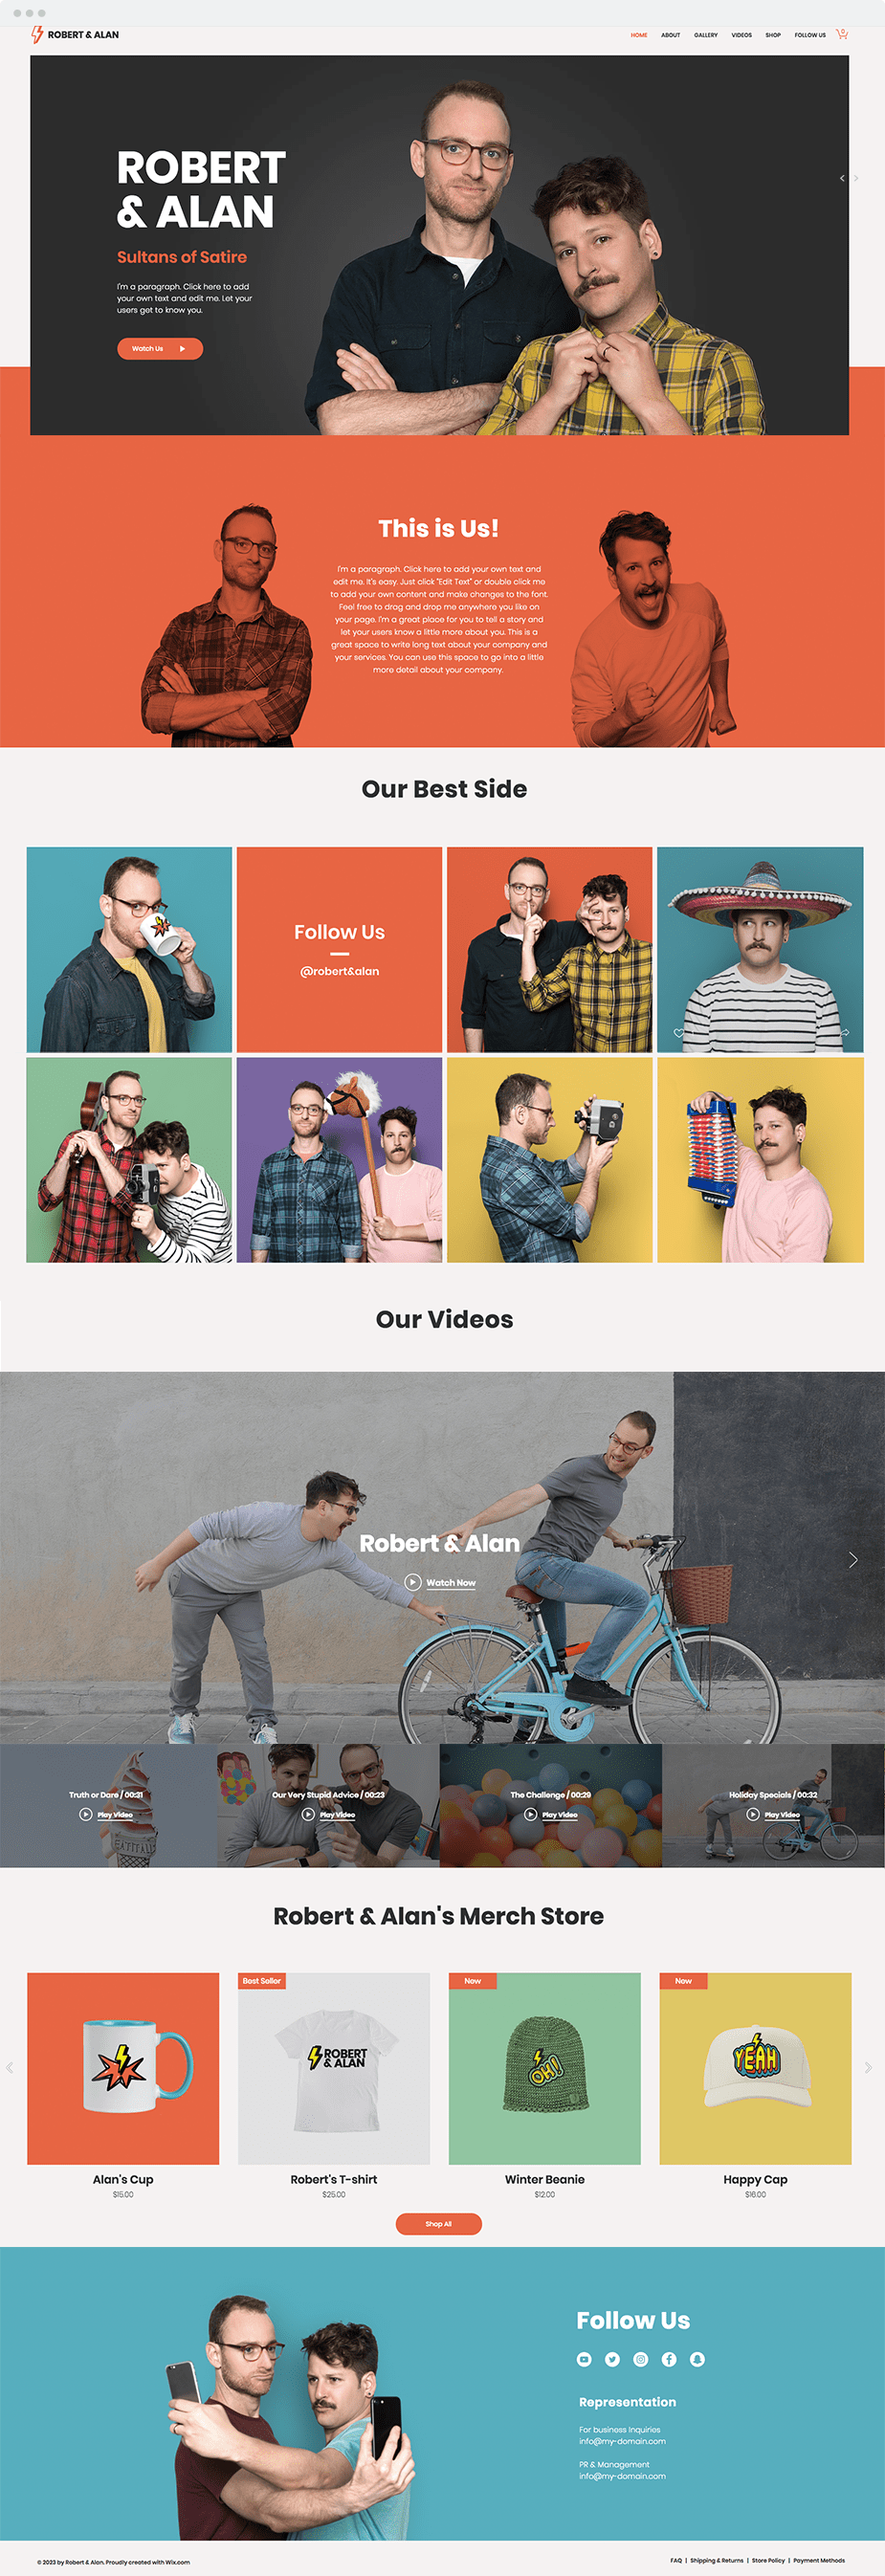 Wix templates: Internet comedians